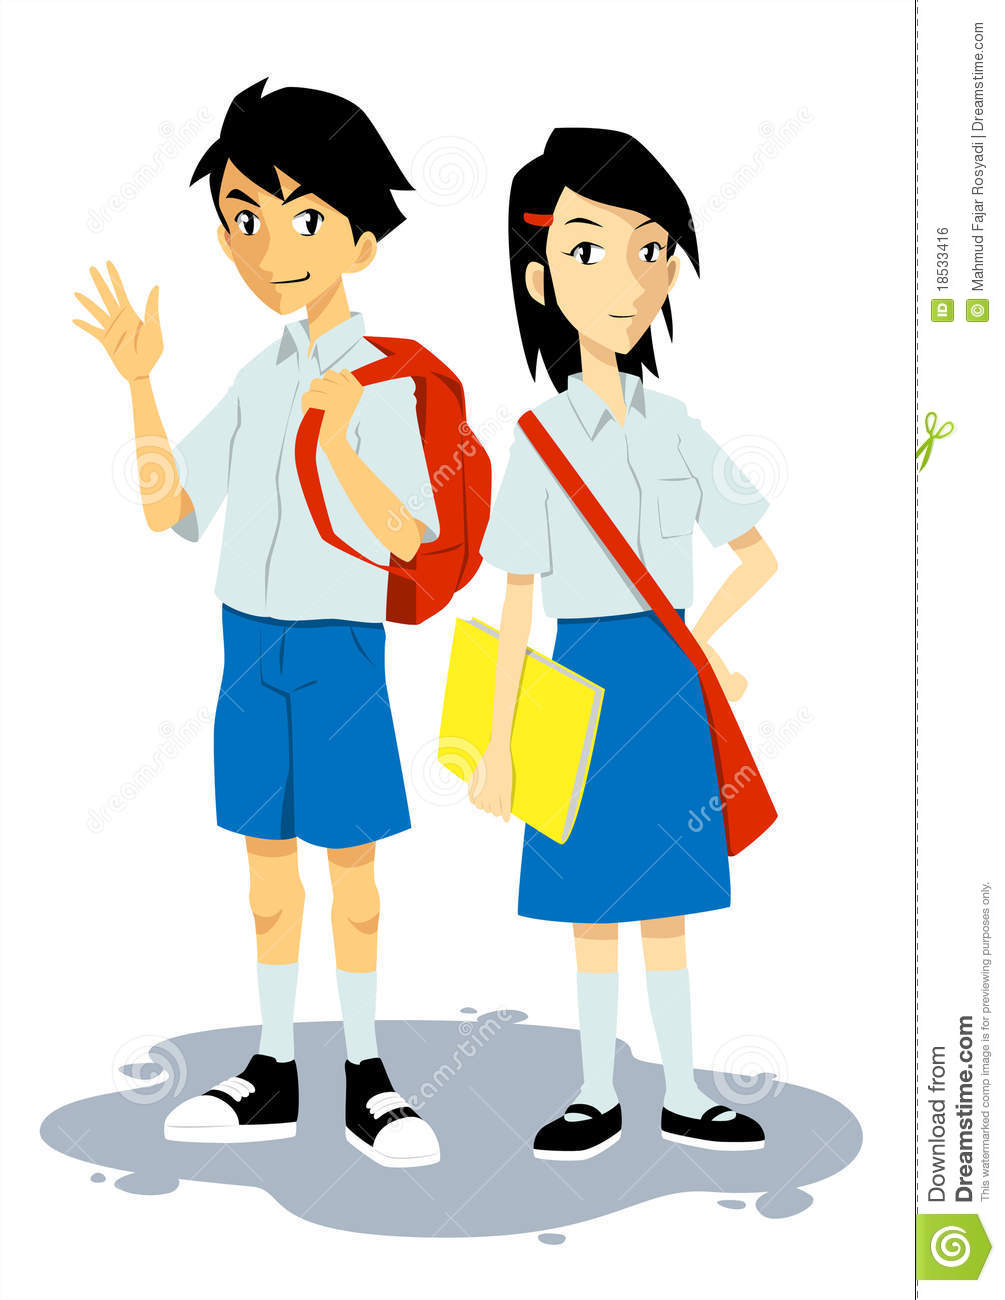 uniform clipart-uniform clipart-12